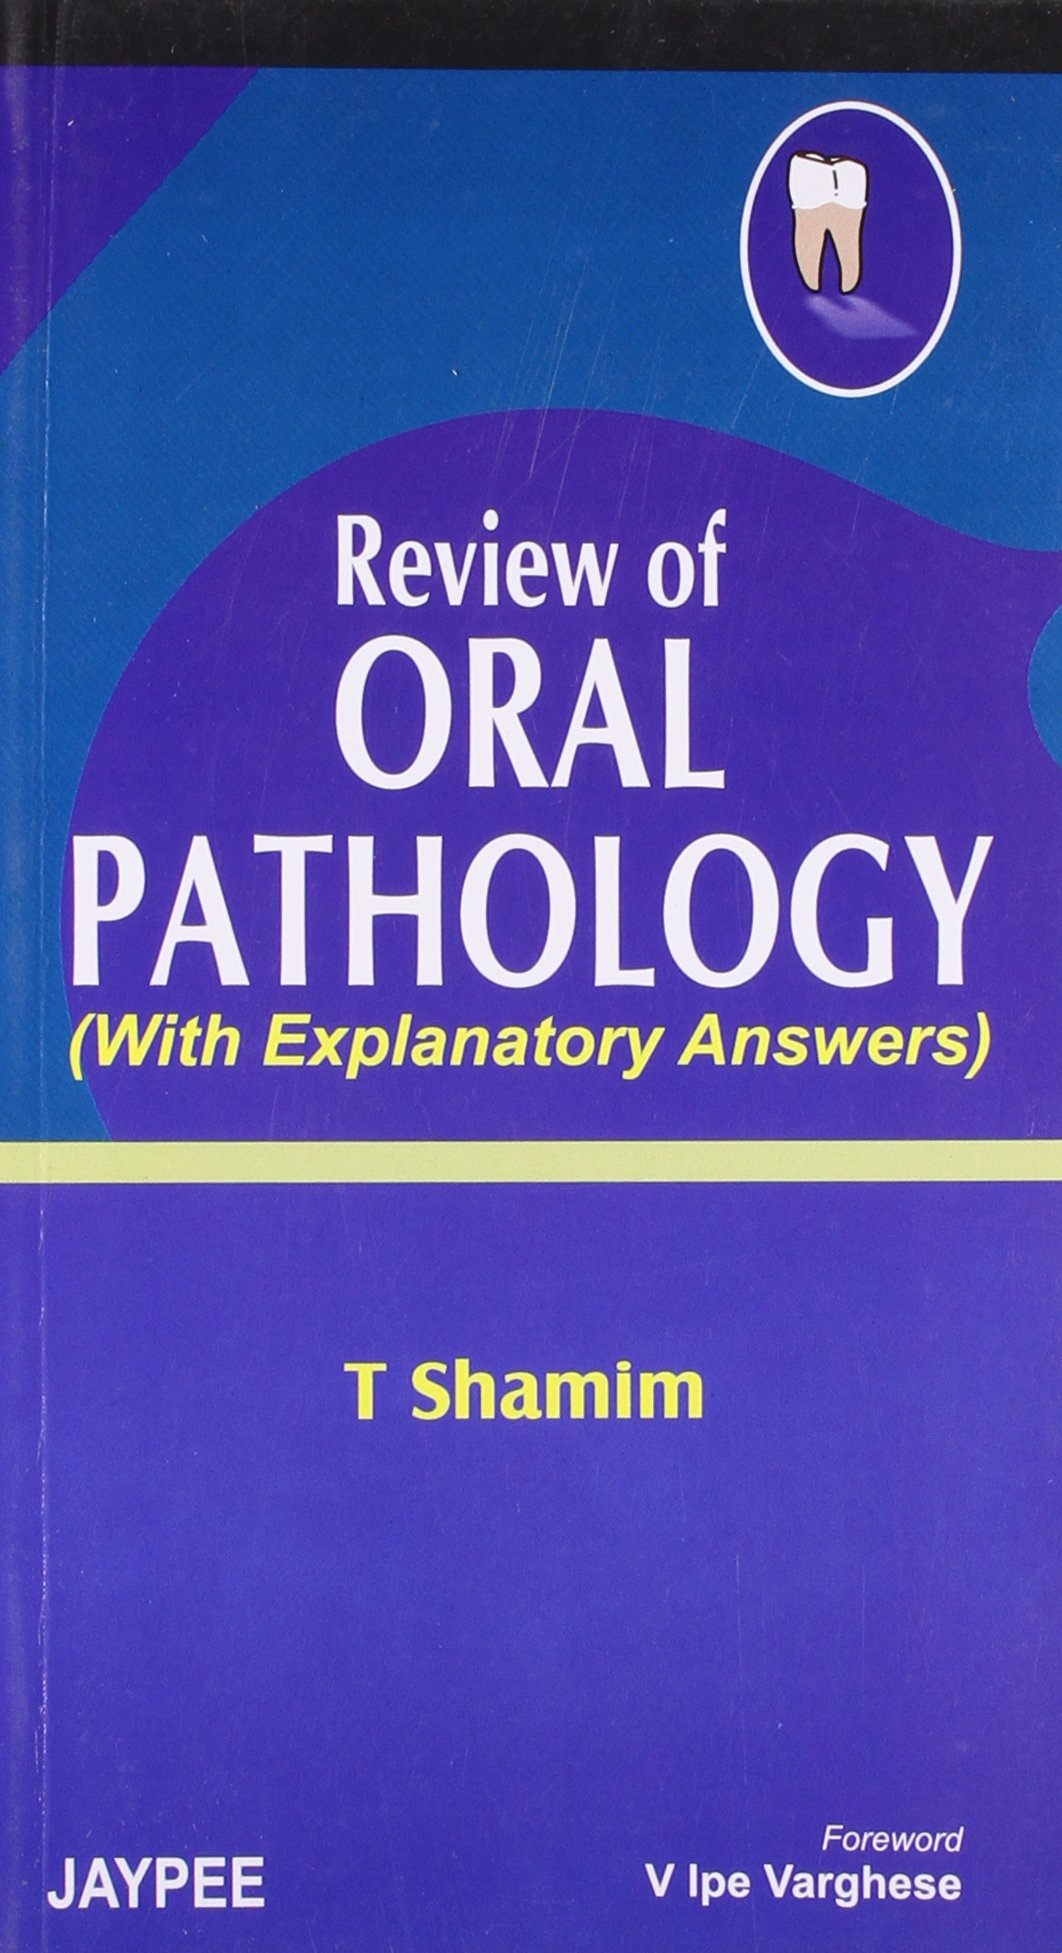 Review of Oral Pathology